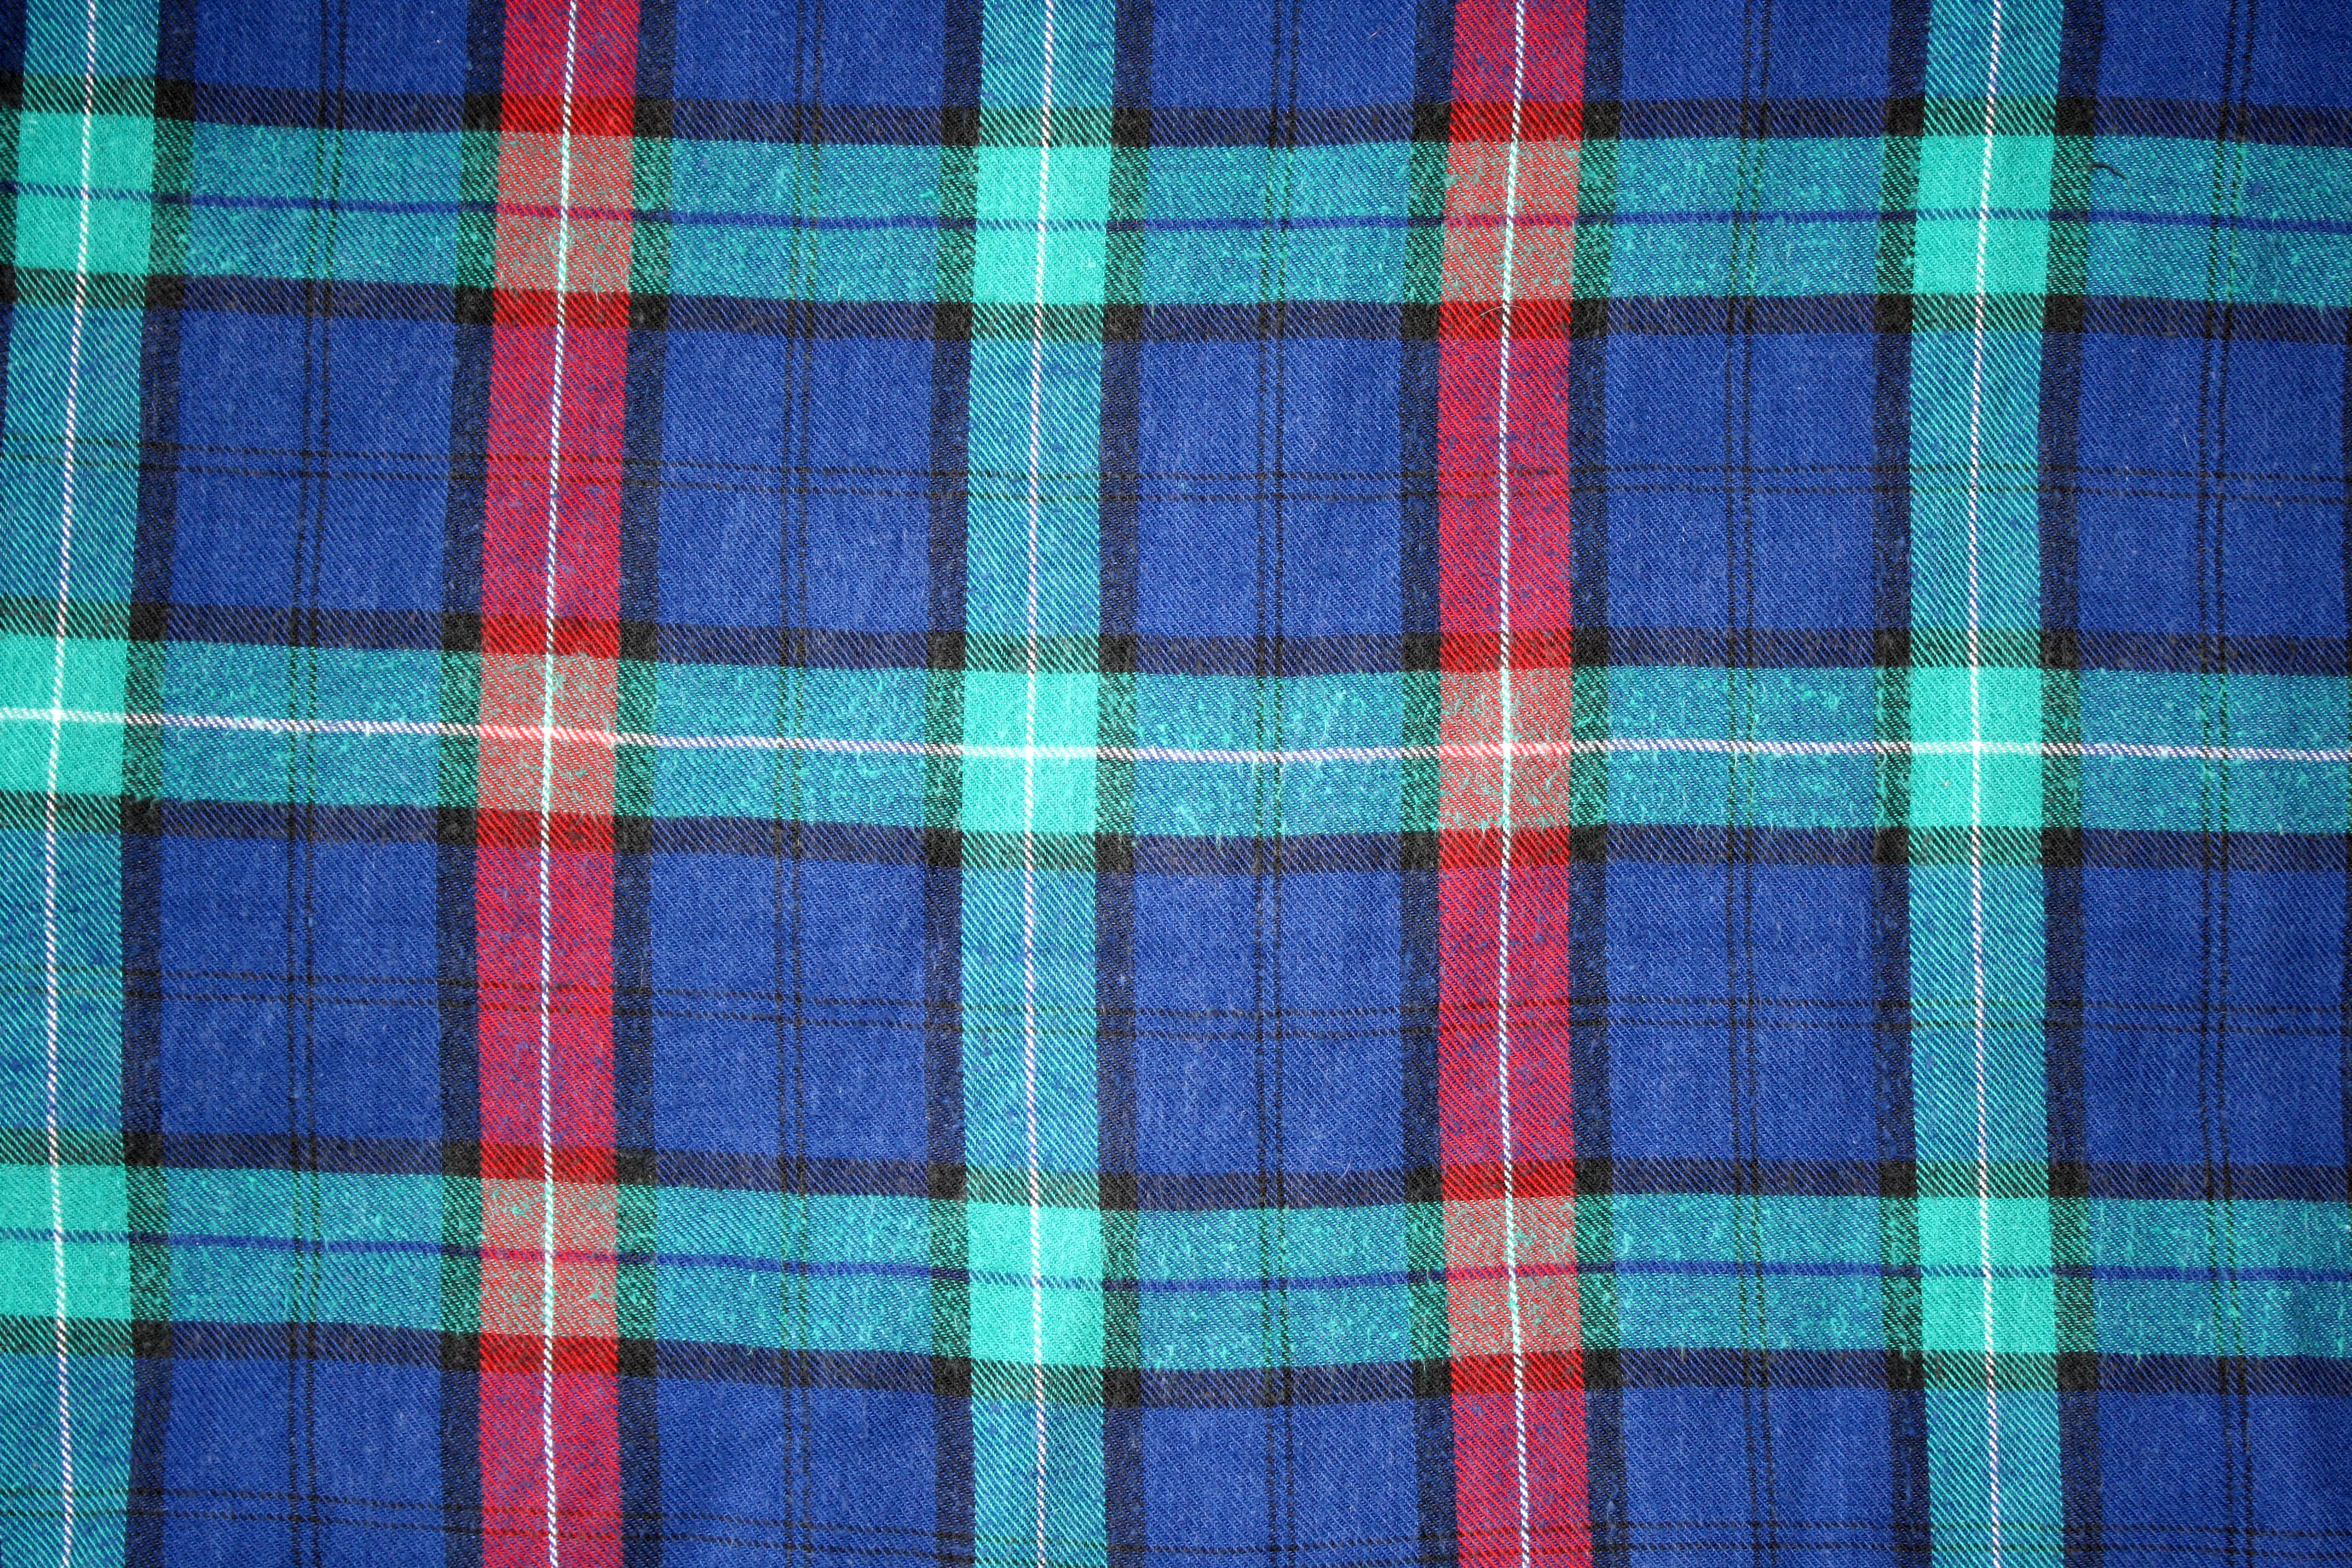 blue green and red plaid texture picture free photograph photos public domain. Black Bedroom Furniture Sets. Home Design Ideas